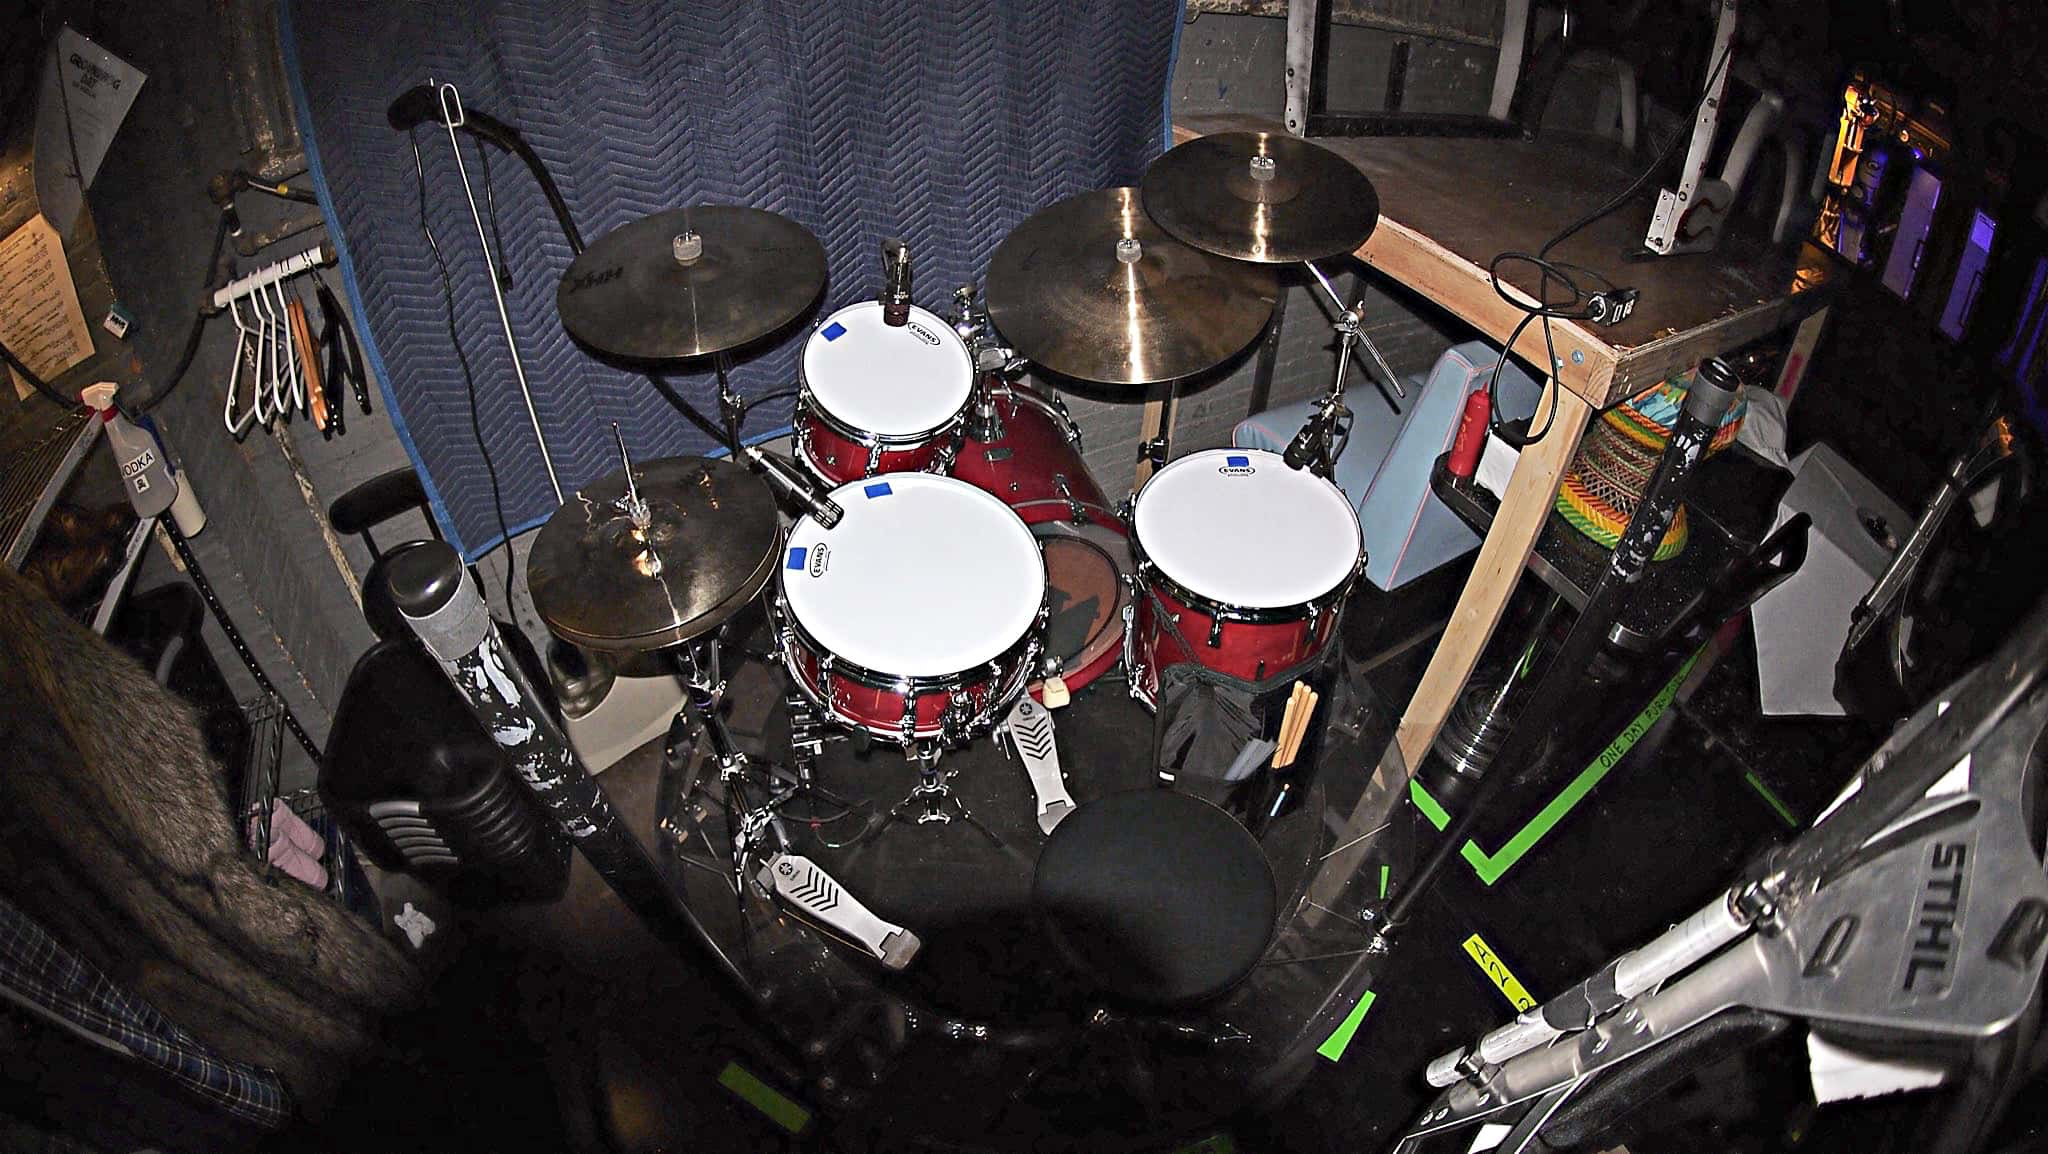 Howard Joines' setup for the Broadway production of Groundhog Day at the August Wilson Theatre.